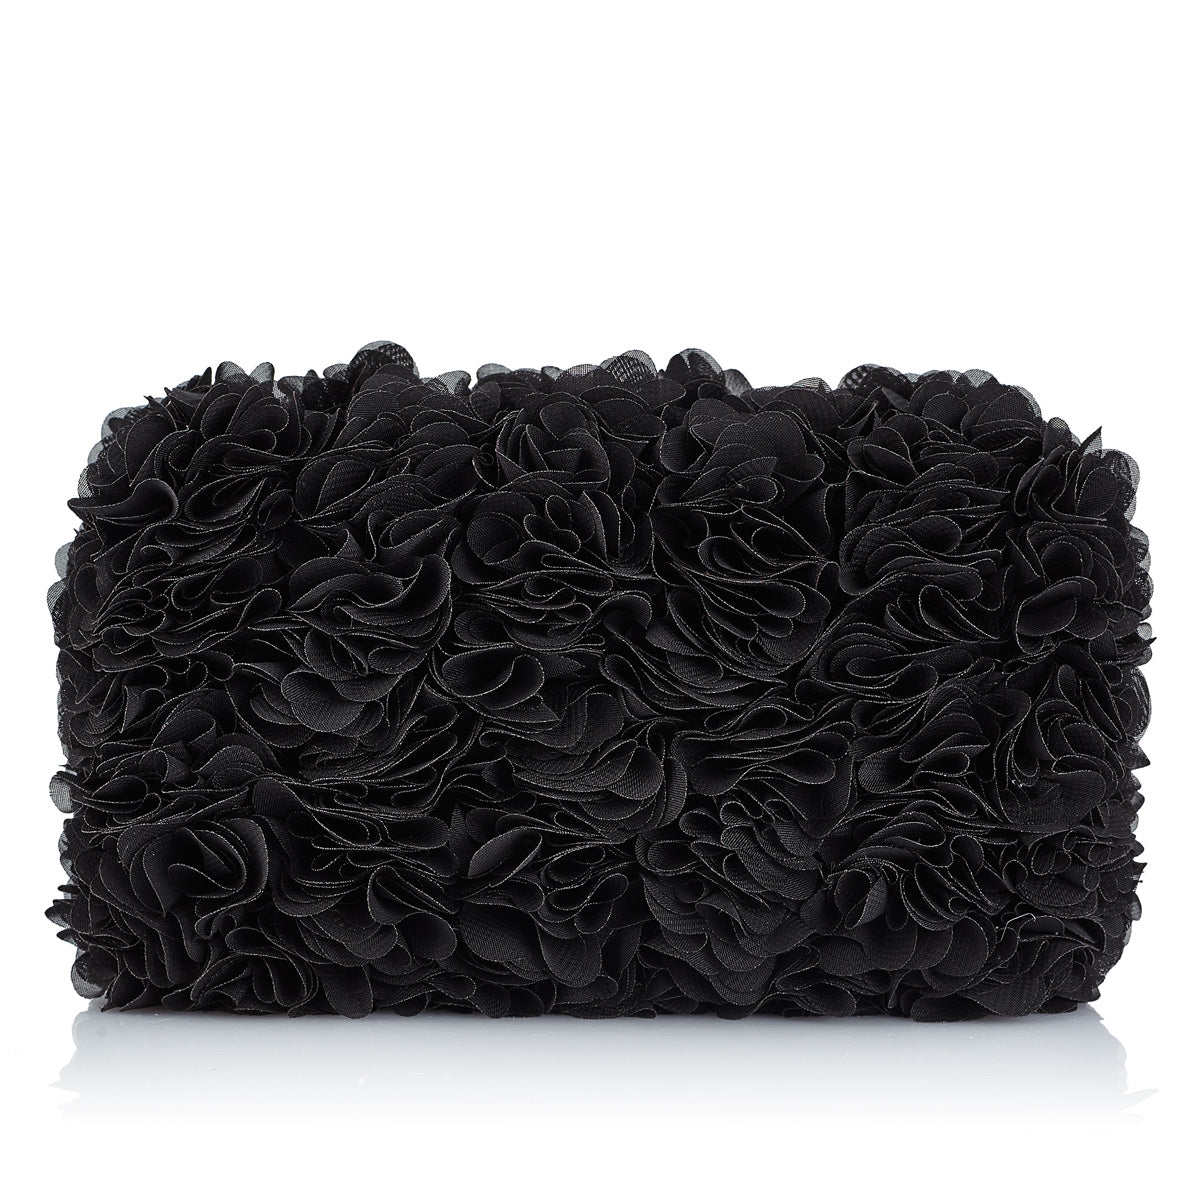 BLACK BLOOMING BABY HANDBAG - Just-ENE